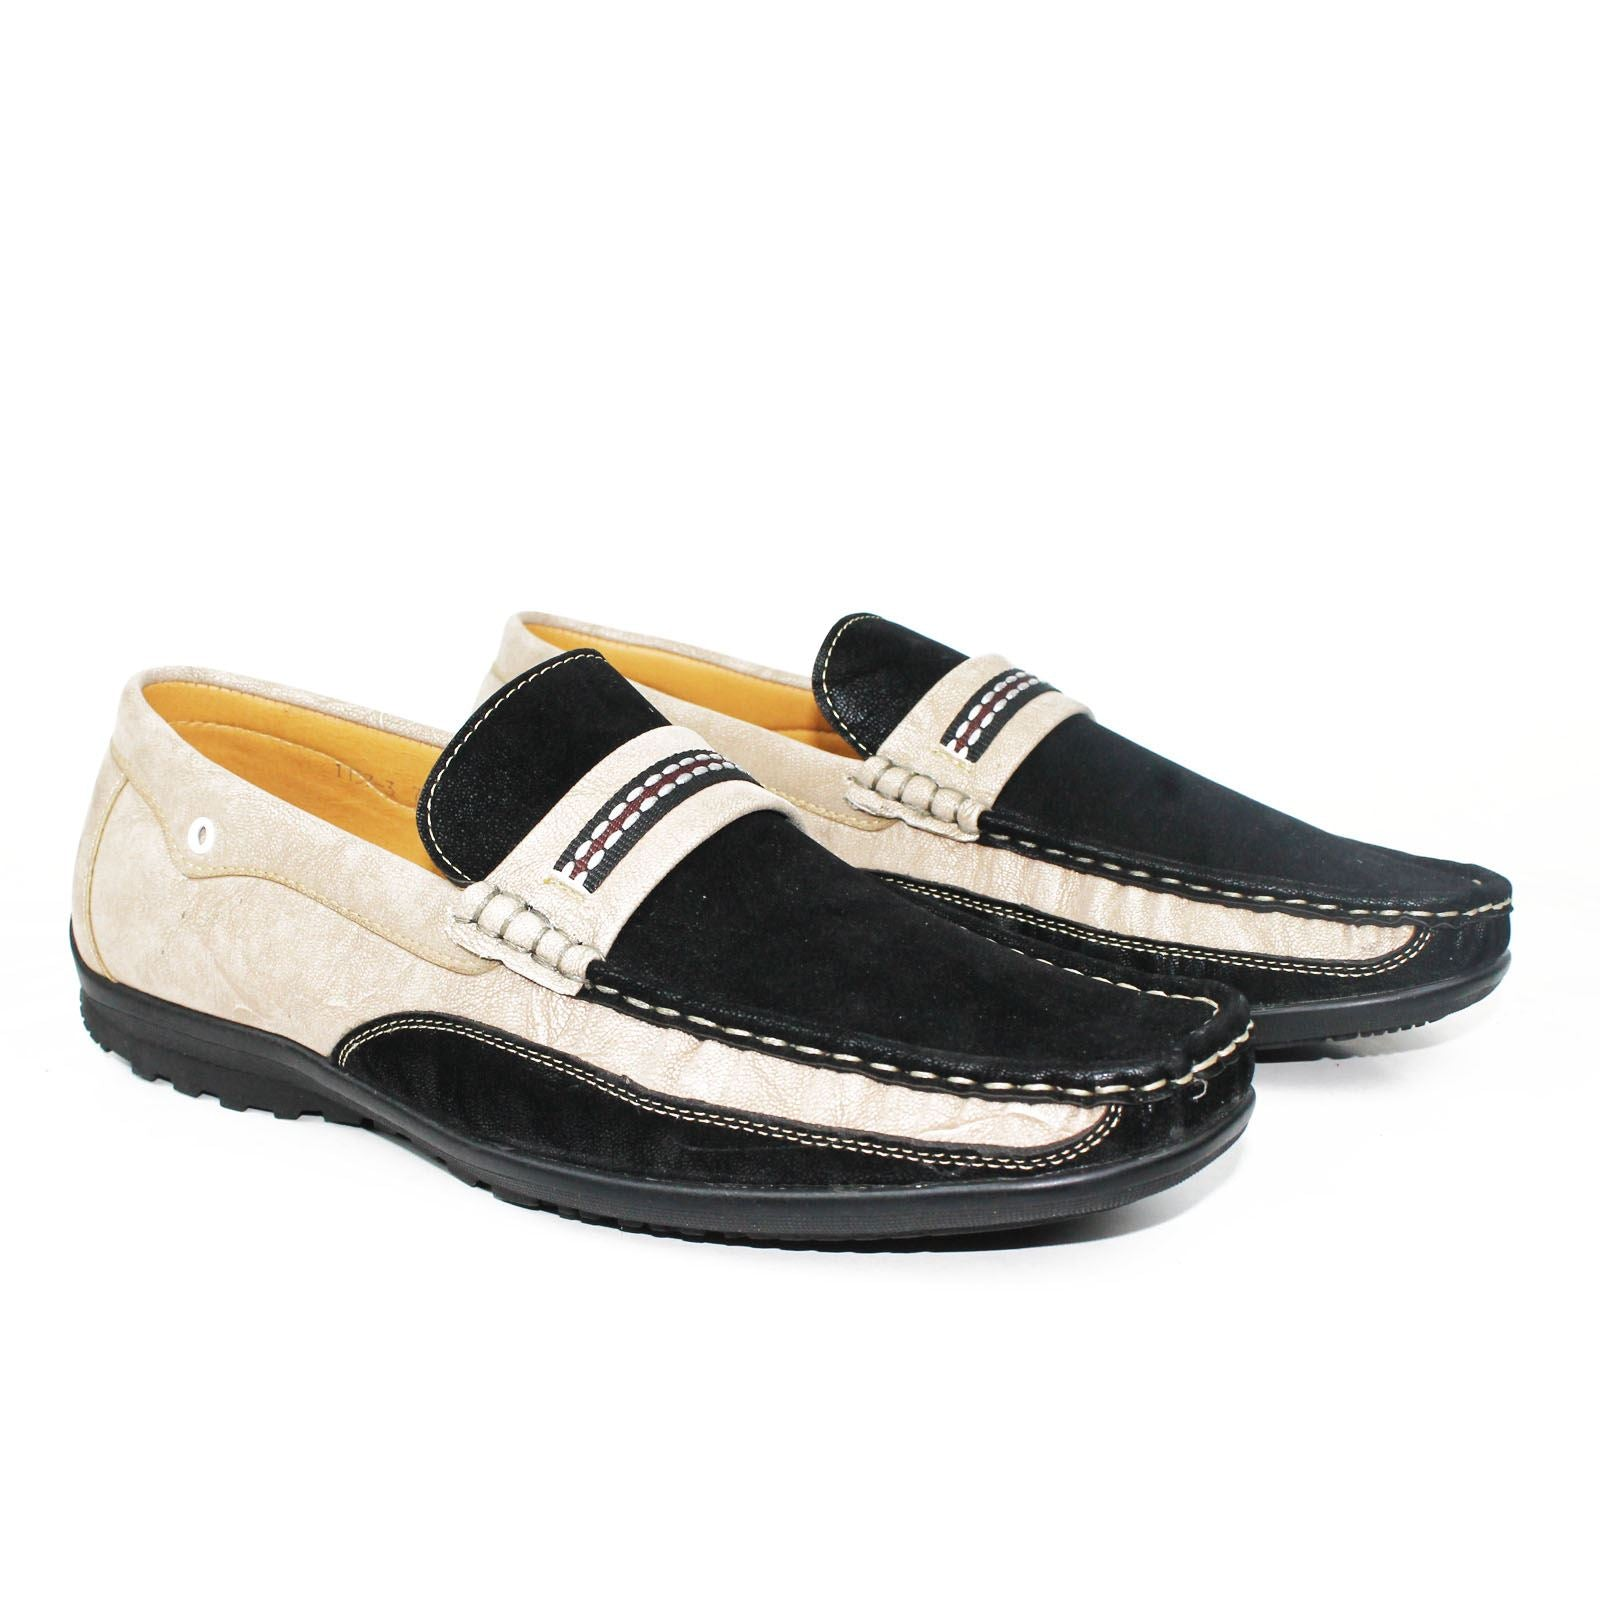 Wholesale Men's Shoes Stylish Park Chanyeol Buckle Loafer Slip On NE13